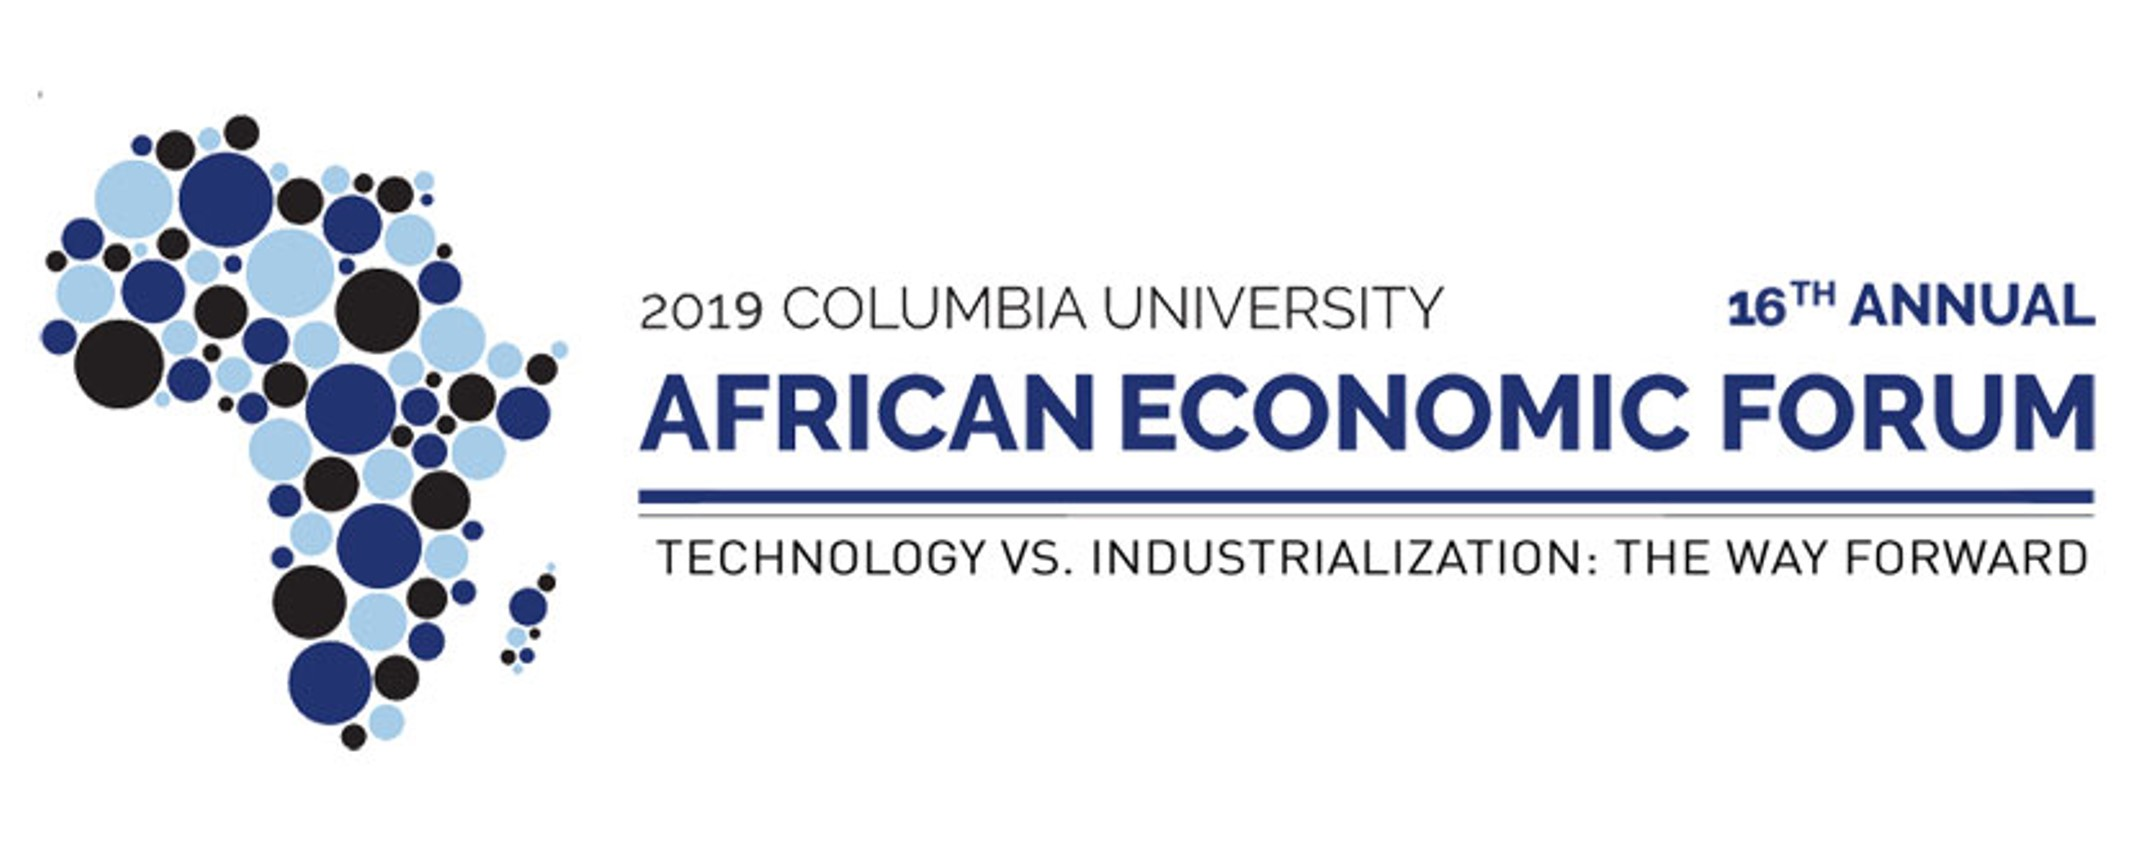 CBS African Business Club - 2019 Columbia African Economic Forum Movemeback African event cover image